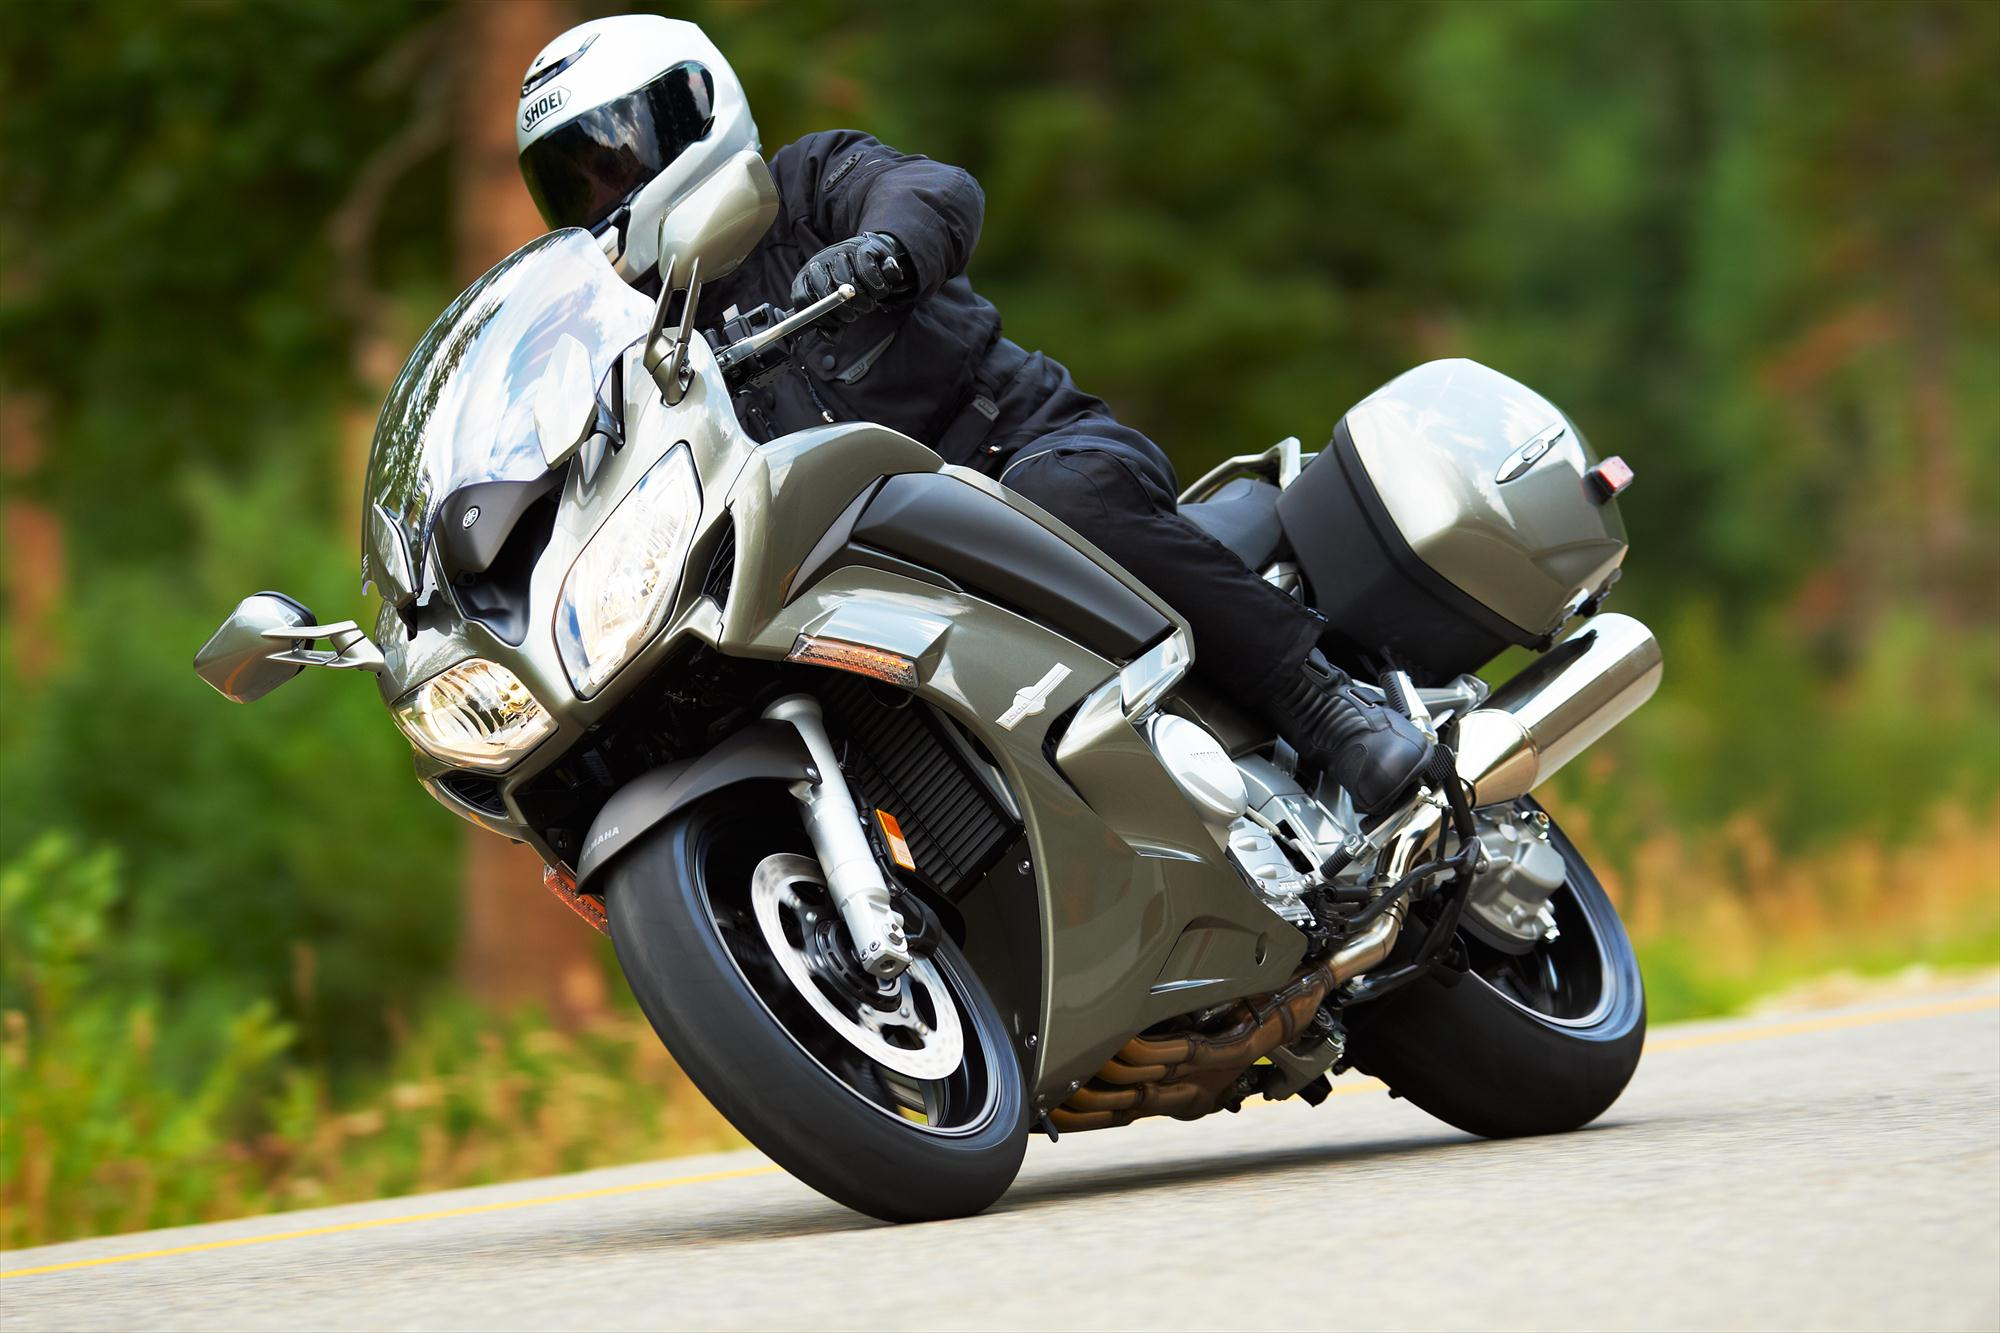 2013 Yamaha FJR1300A, the Supersport Touring Benchmark ...